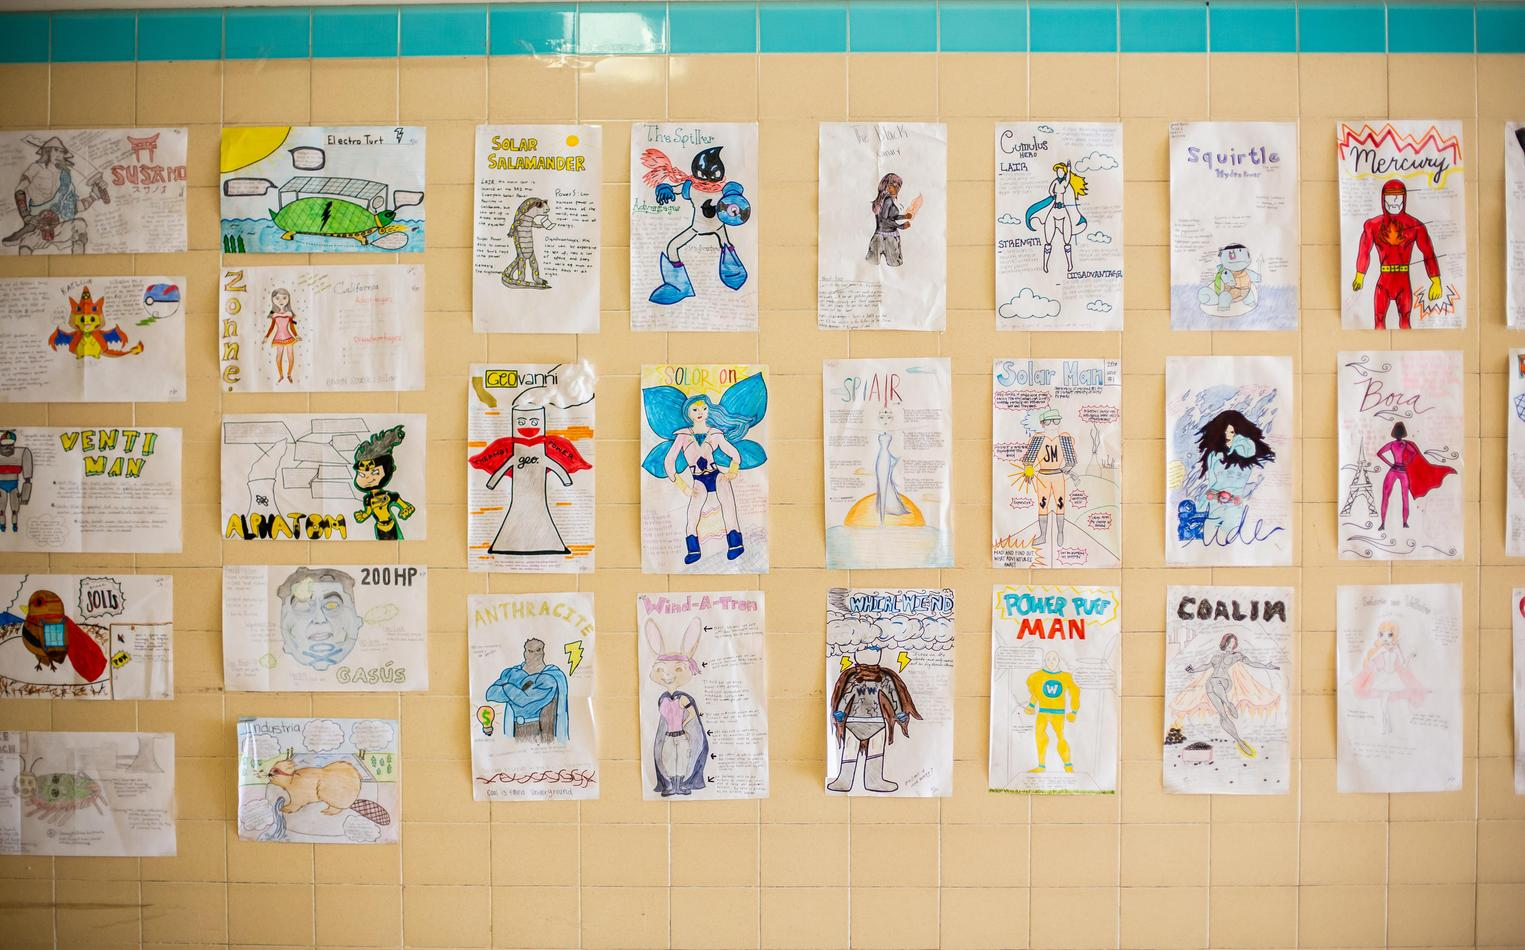 Student artwork displayed in school hallway.